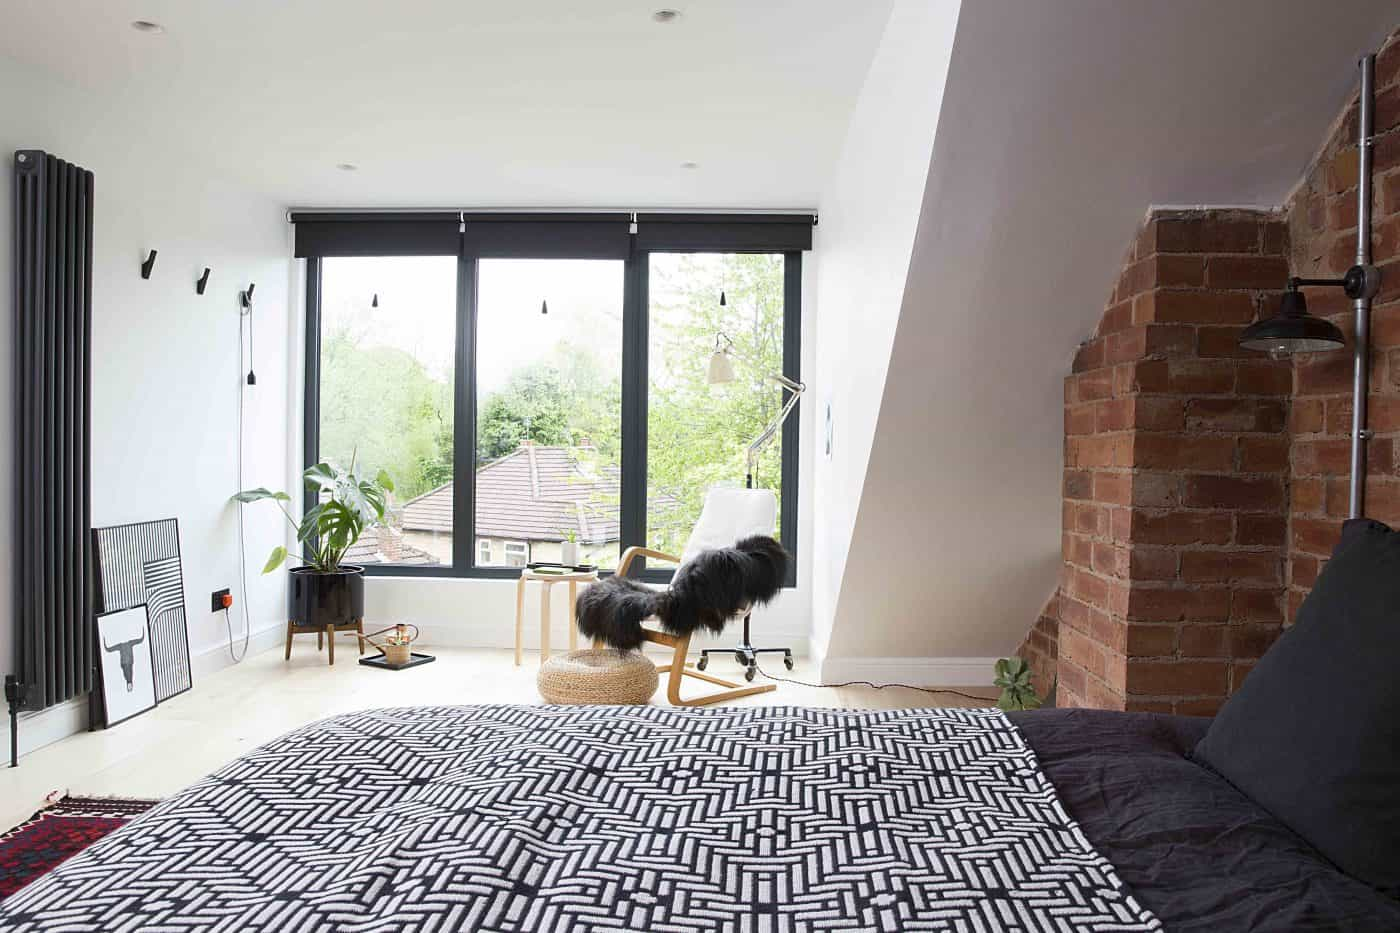 Karen Knox of Making Spaces Loft Bedroom Conversion. 10 Tips for preparing your home for sale - bring in natural light